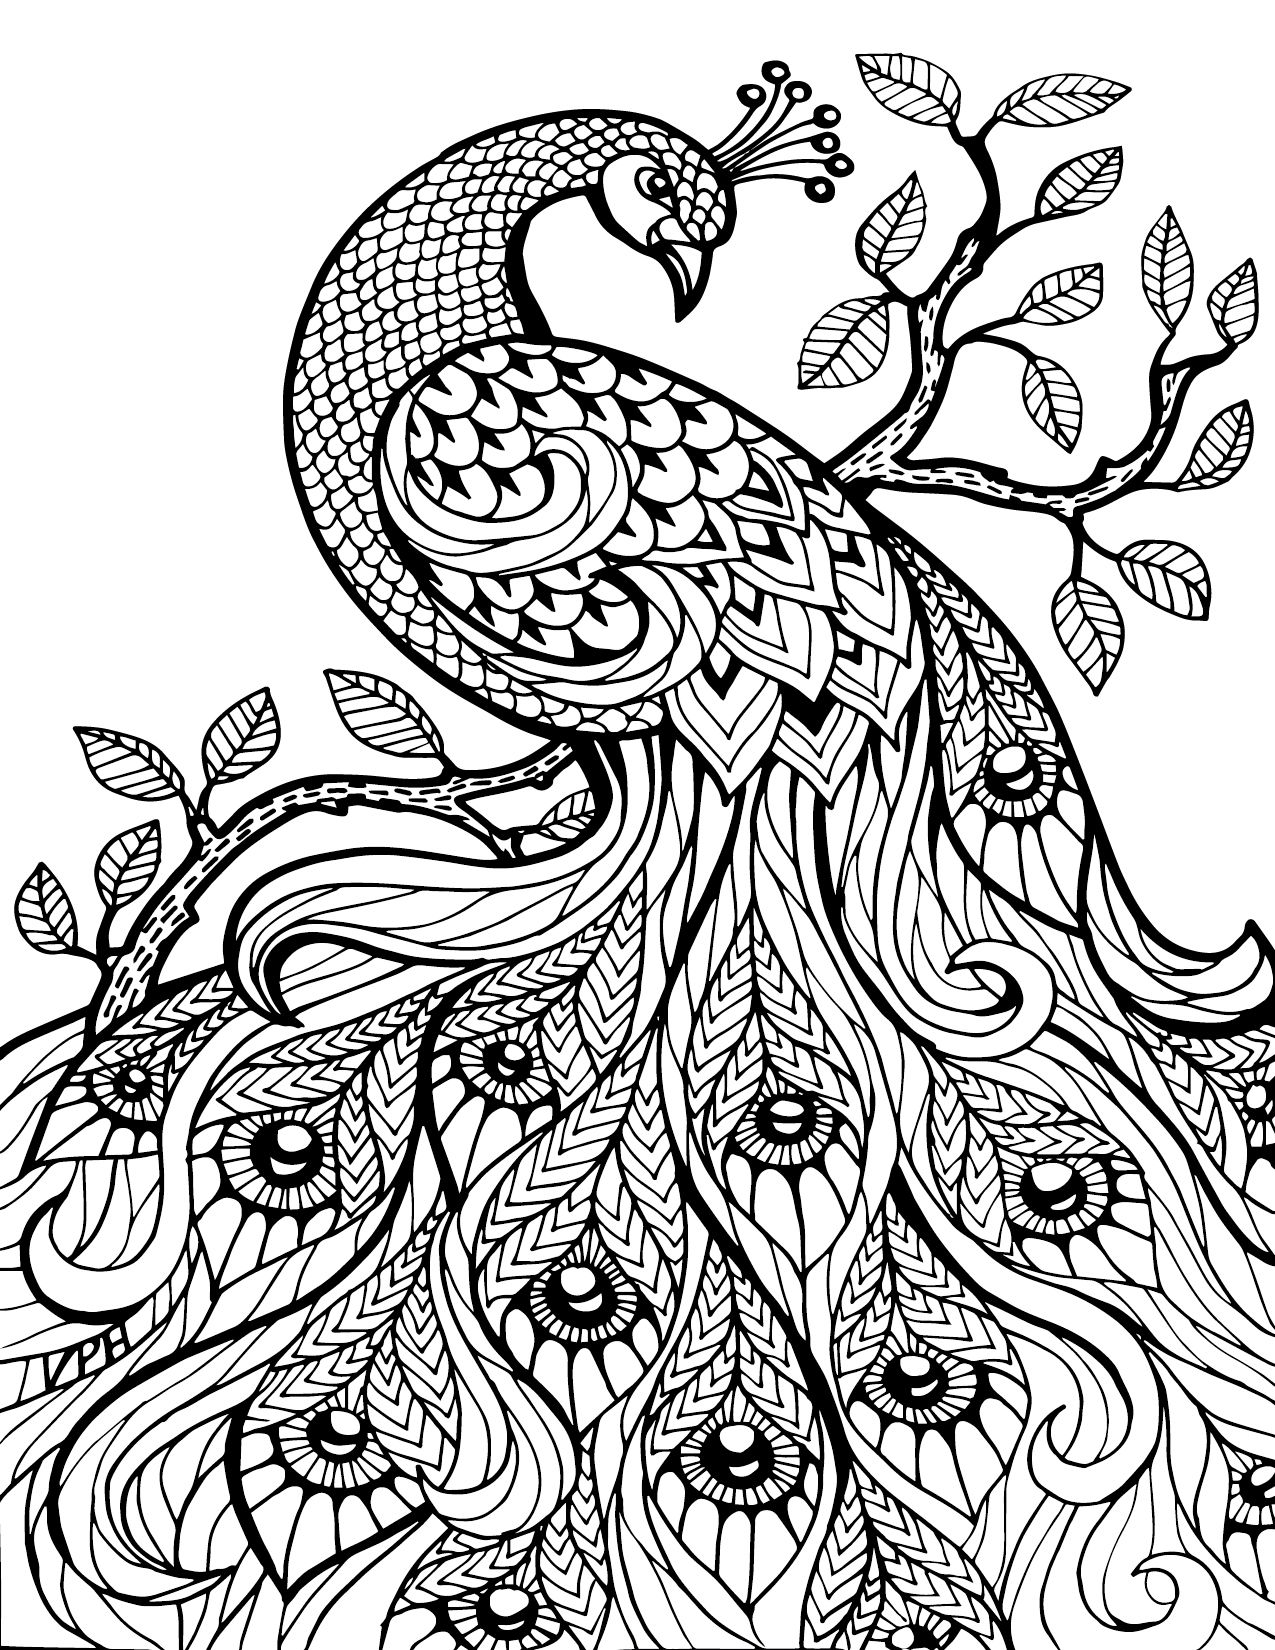 Adult coloring pages free printables mandala - Free Printable Coloring Pages For Adults Only Image 36 Art Davlin Publishing